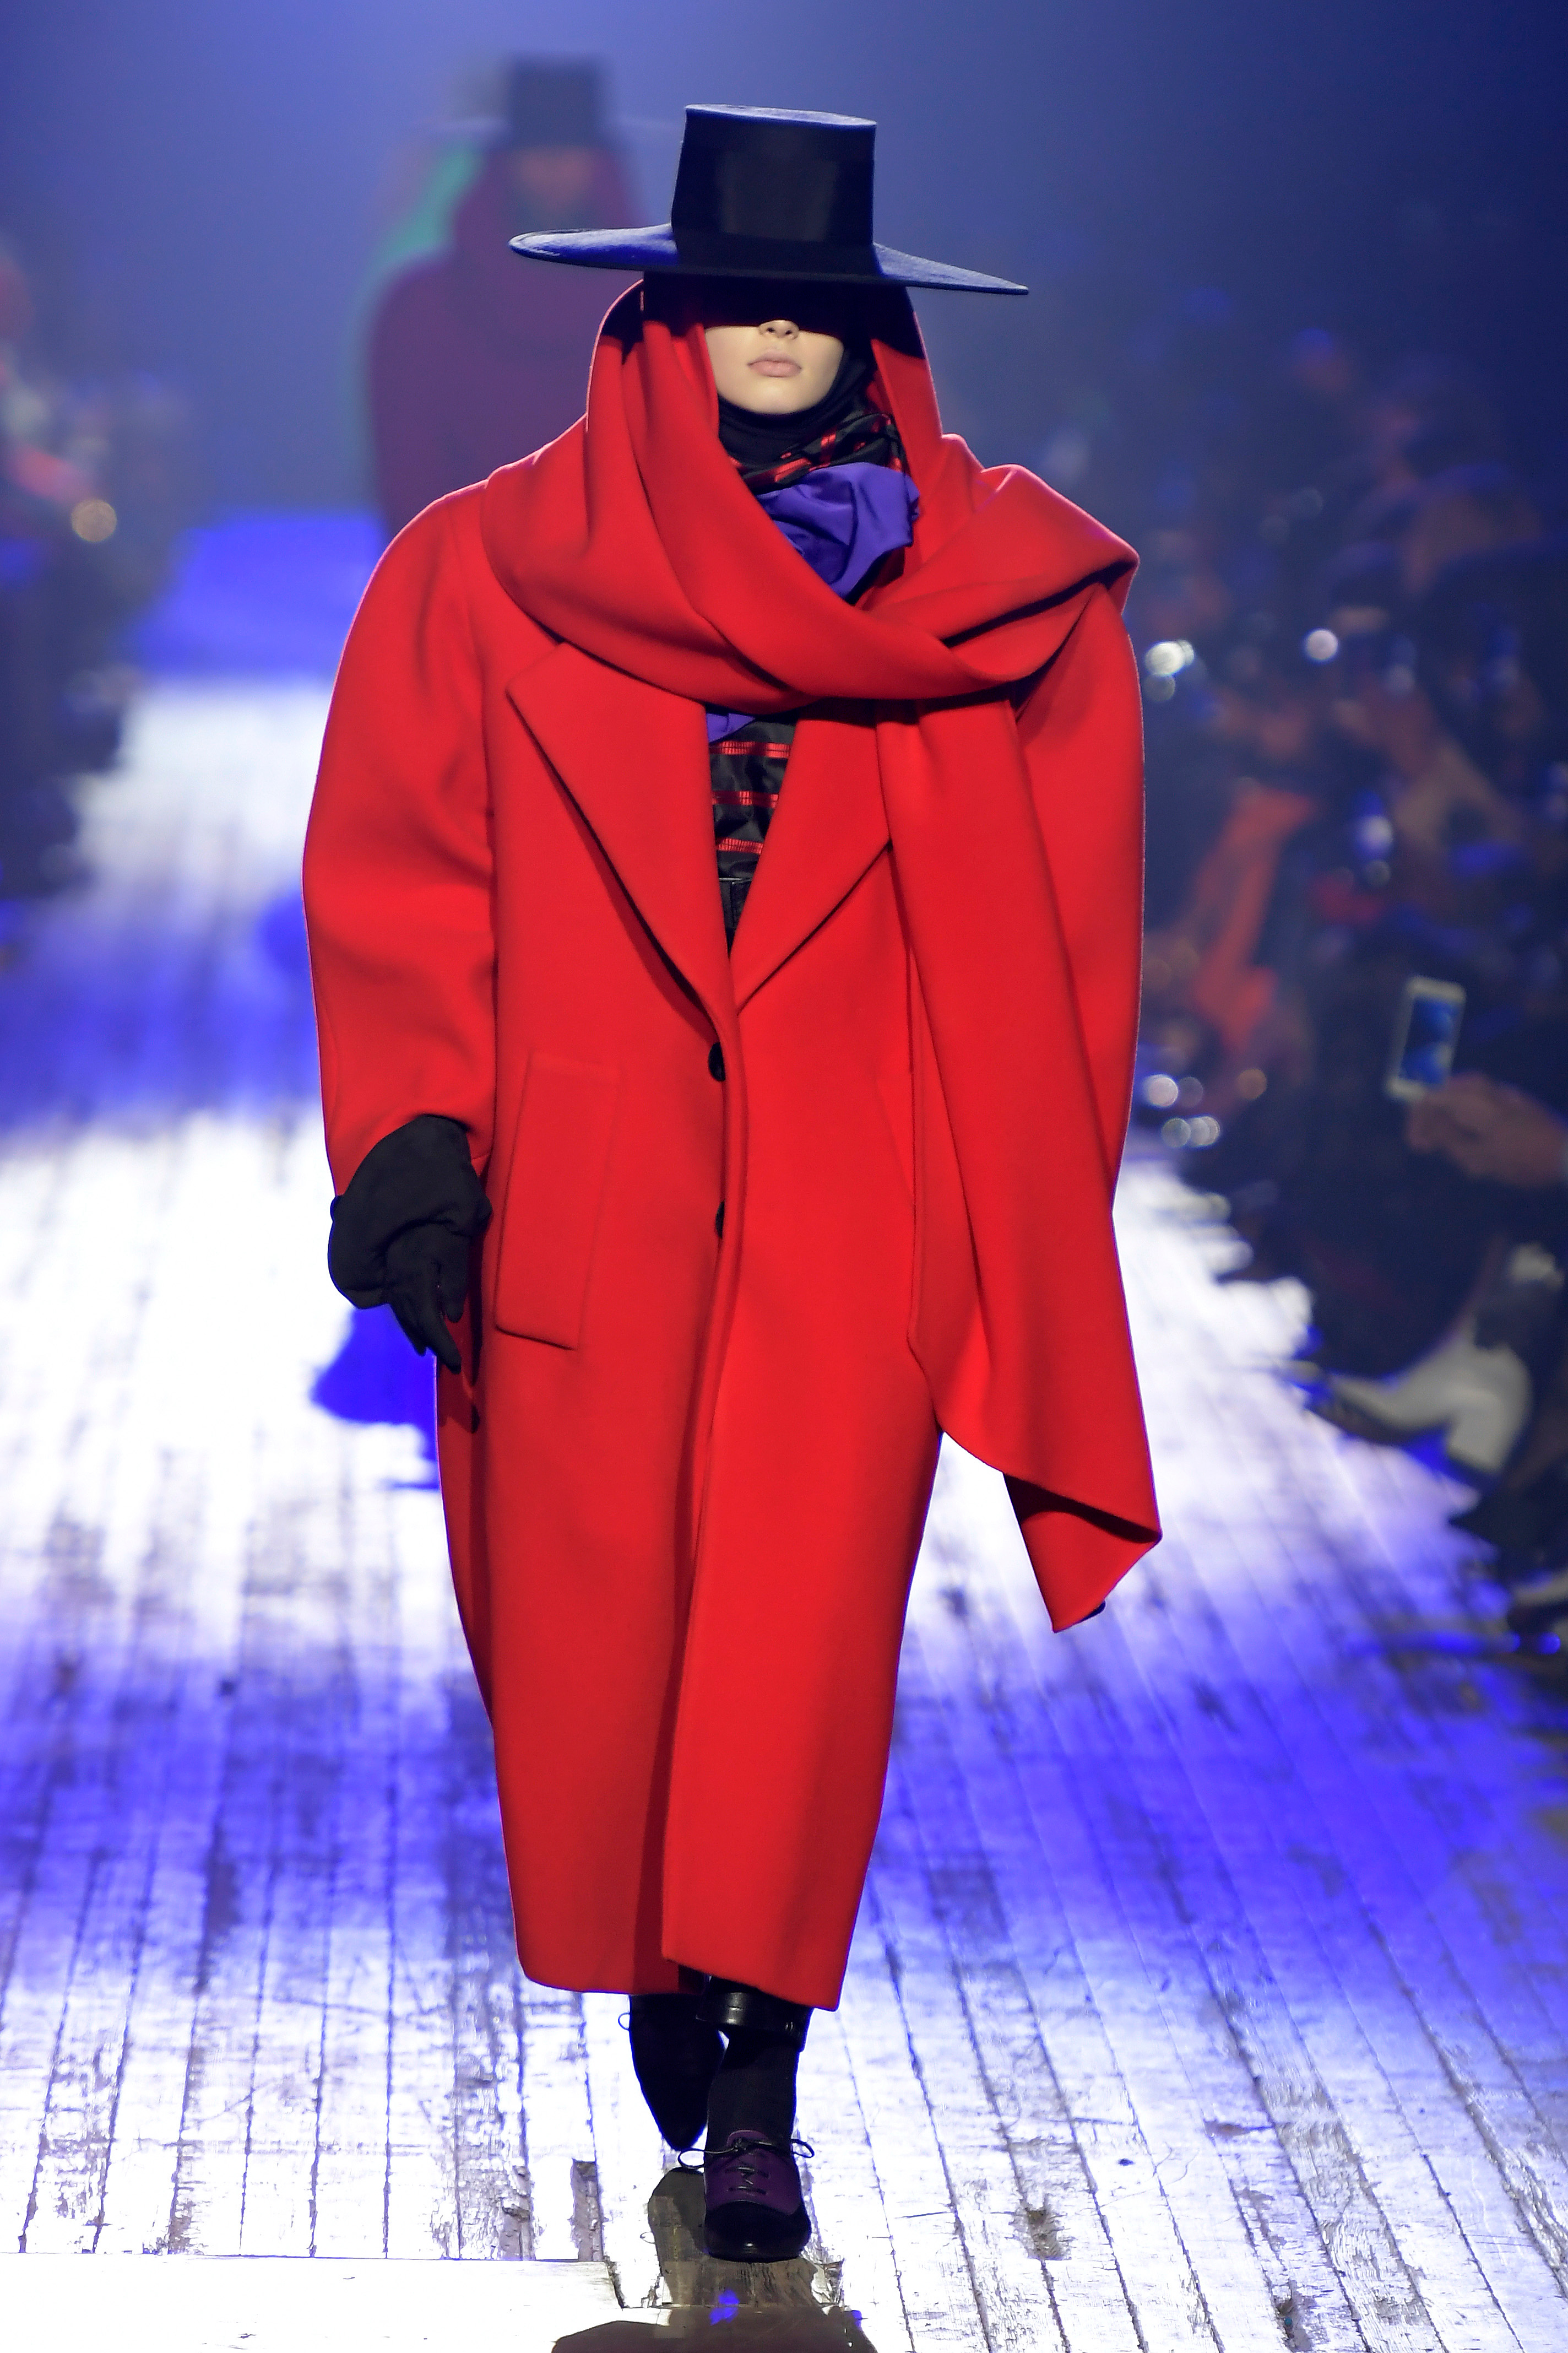 Model on the catwalkMarc Jacobs show, Runway, Fall Winter 2018, New York Fashion Week, USA - 14 Feb 2018